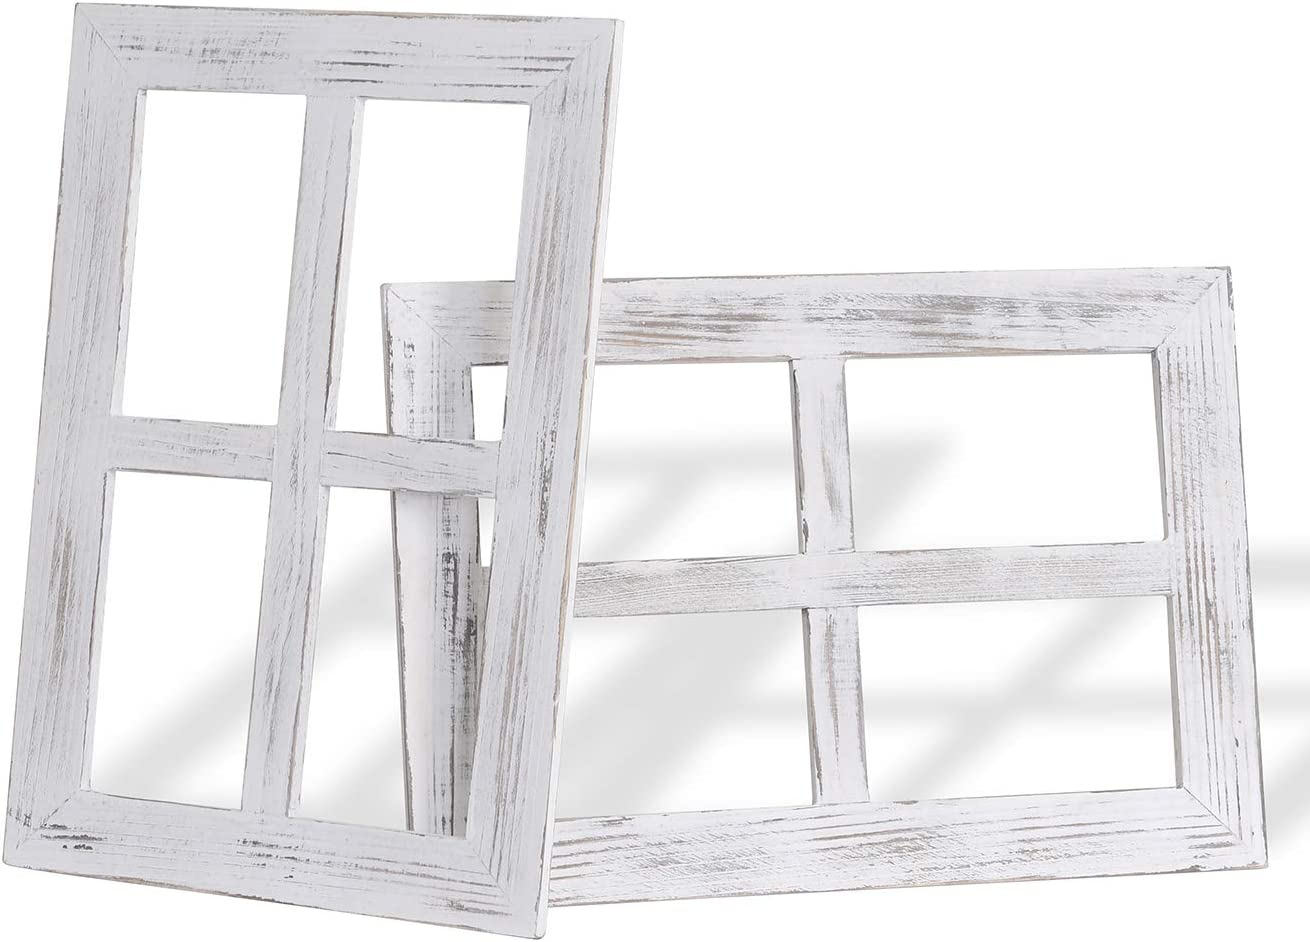 Rustic Wall Decor Window Frame, Farmhouse Wood 4 Pane Antique Wall Mounted Signs, Window Frame Home Rustic Room Decor, 2 Pack, White